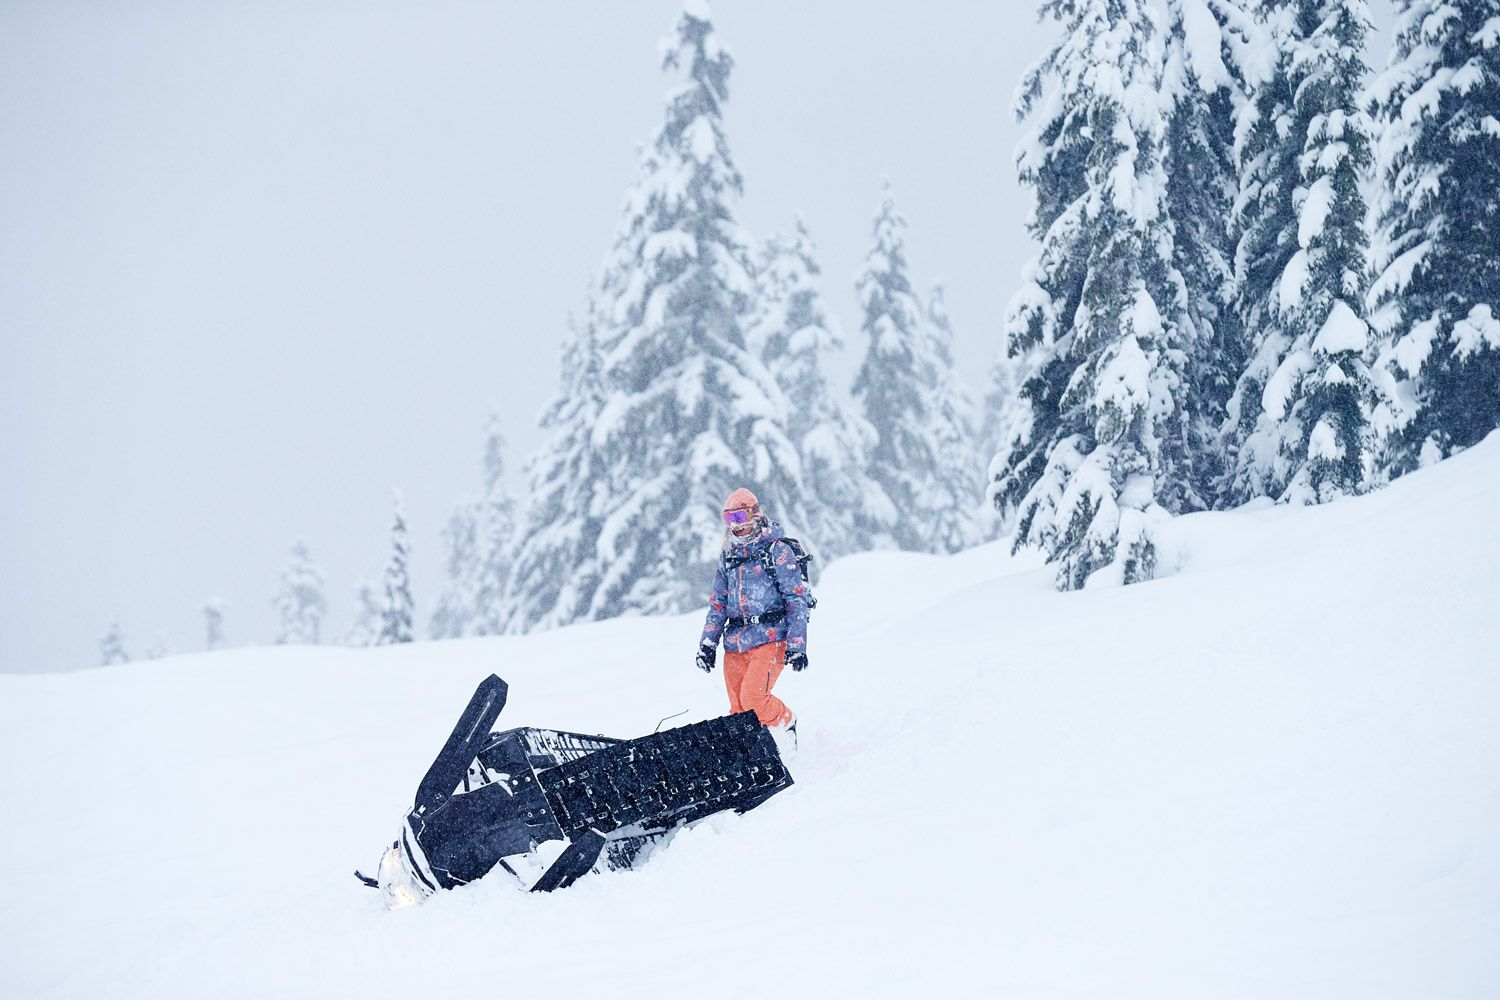 From one adventure to the next. Robin Van Gyn in Whistler BC #ROXYsnow